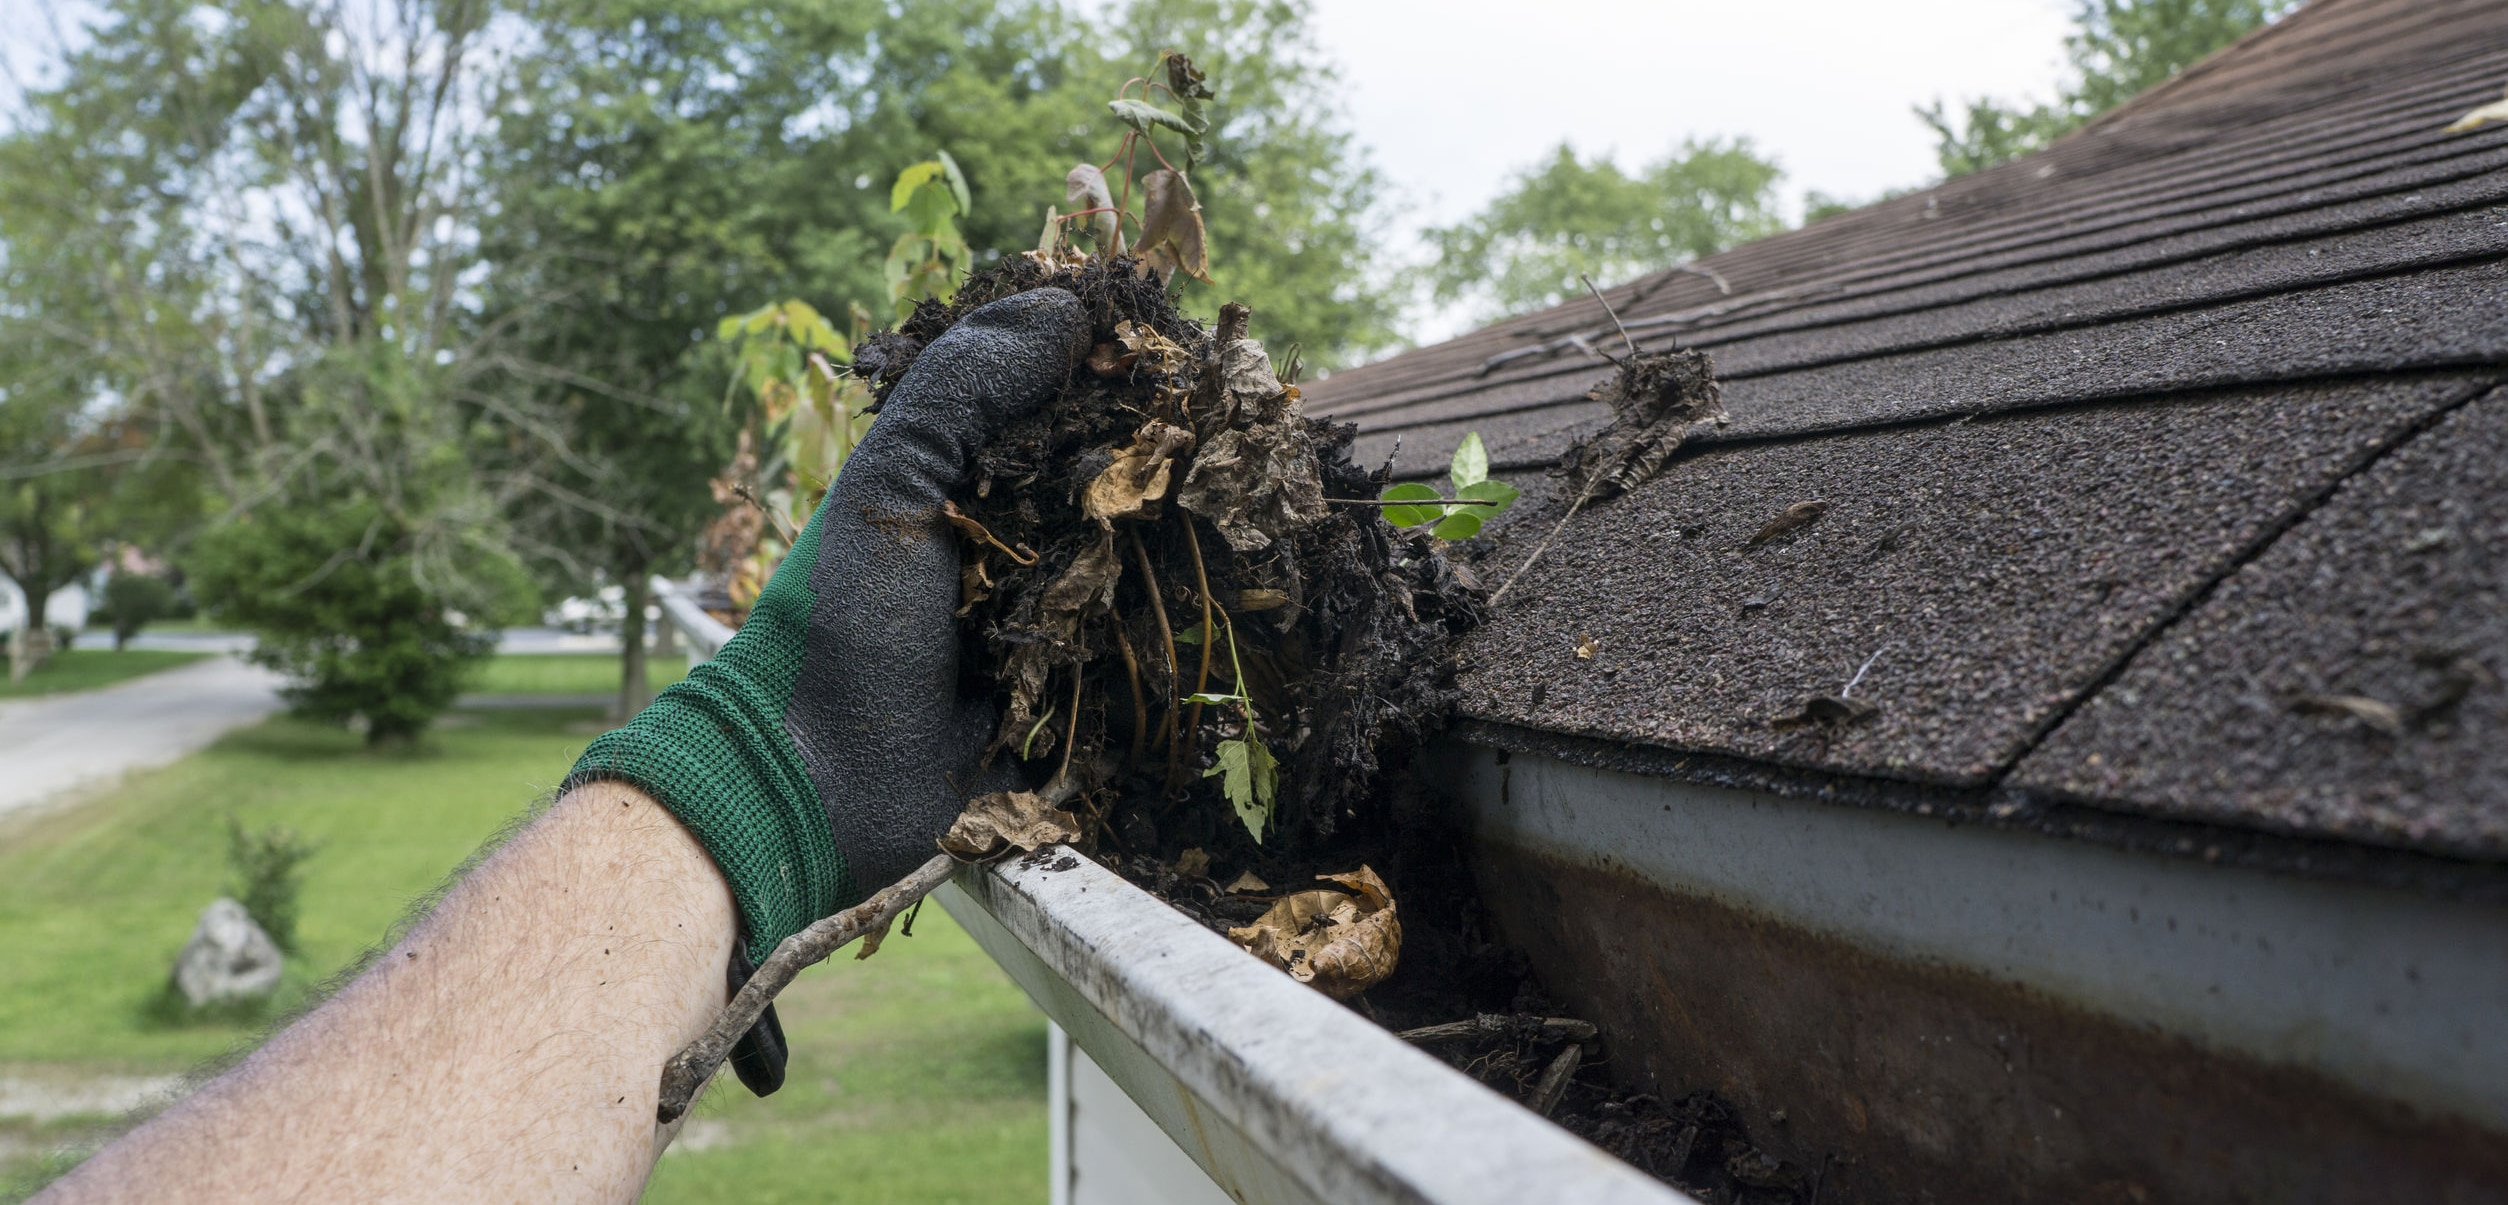 Hands Cleaning Gutters Filled With Leaves and Sticks